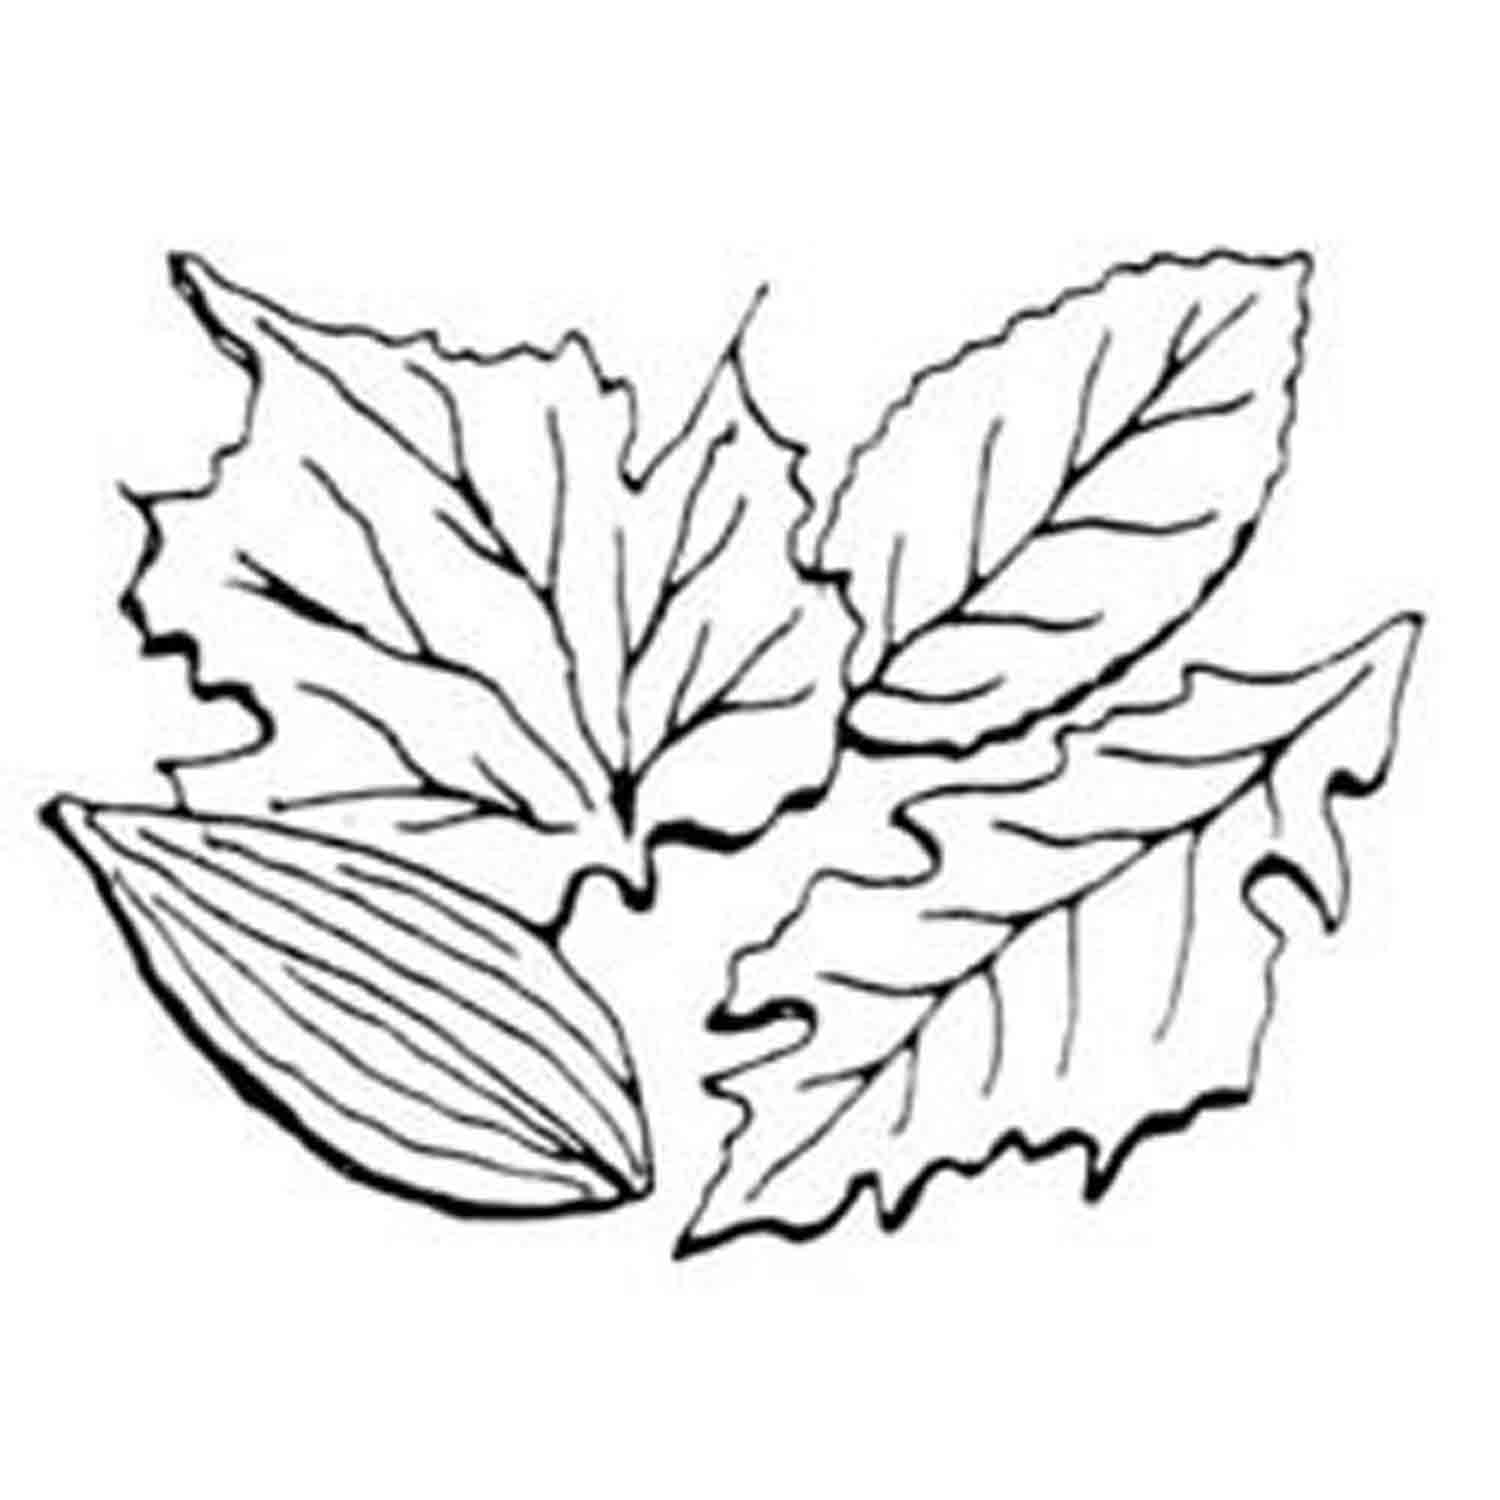 Gumpaste Leaf Veiner Set (A)